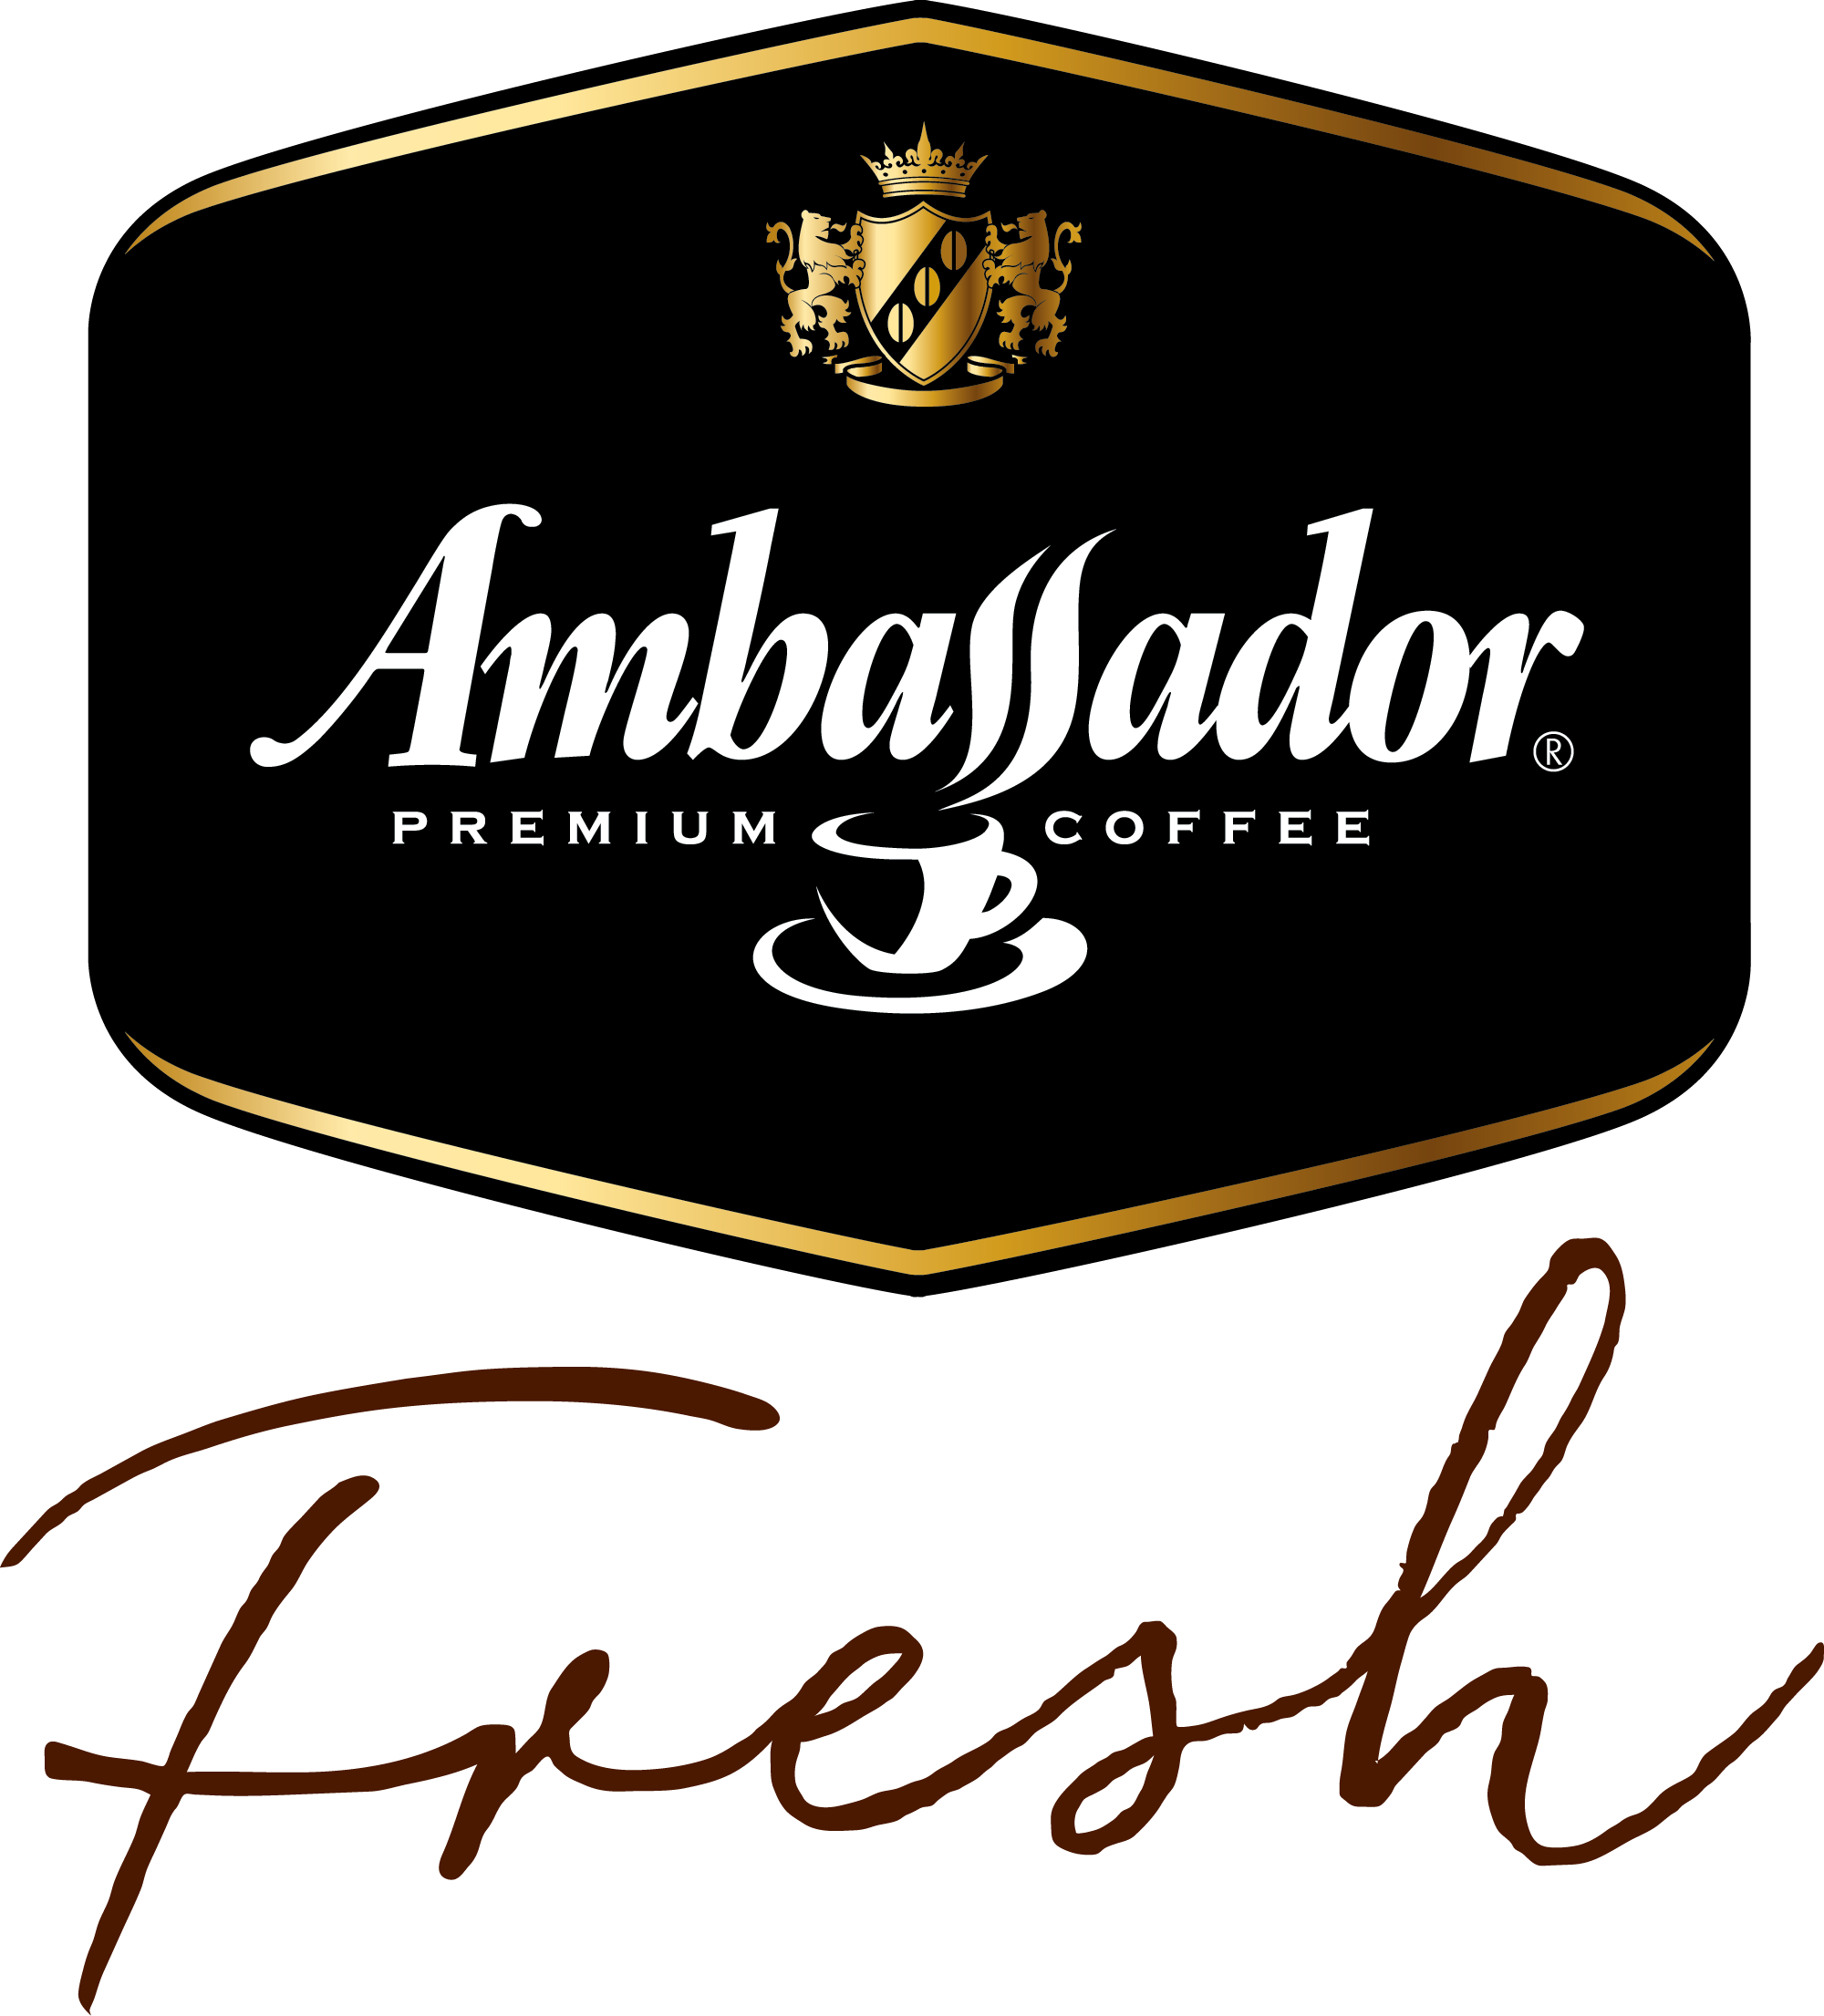 Ambassador Fresh - Fresh roasted coffee directly from the manufactory!